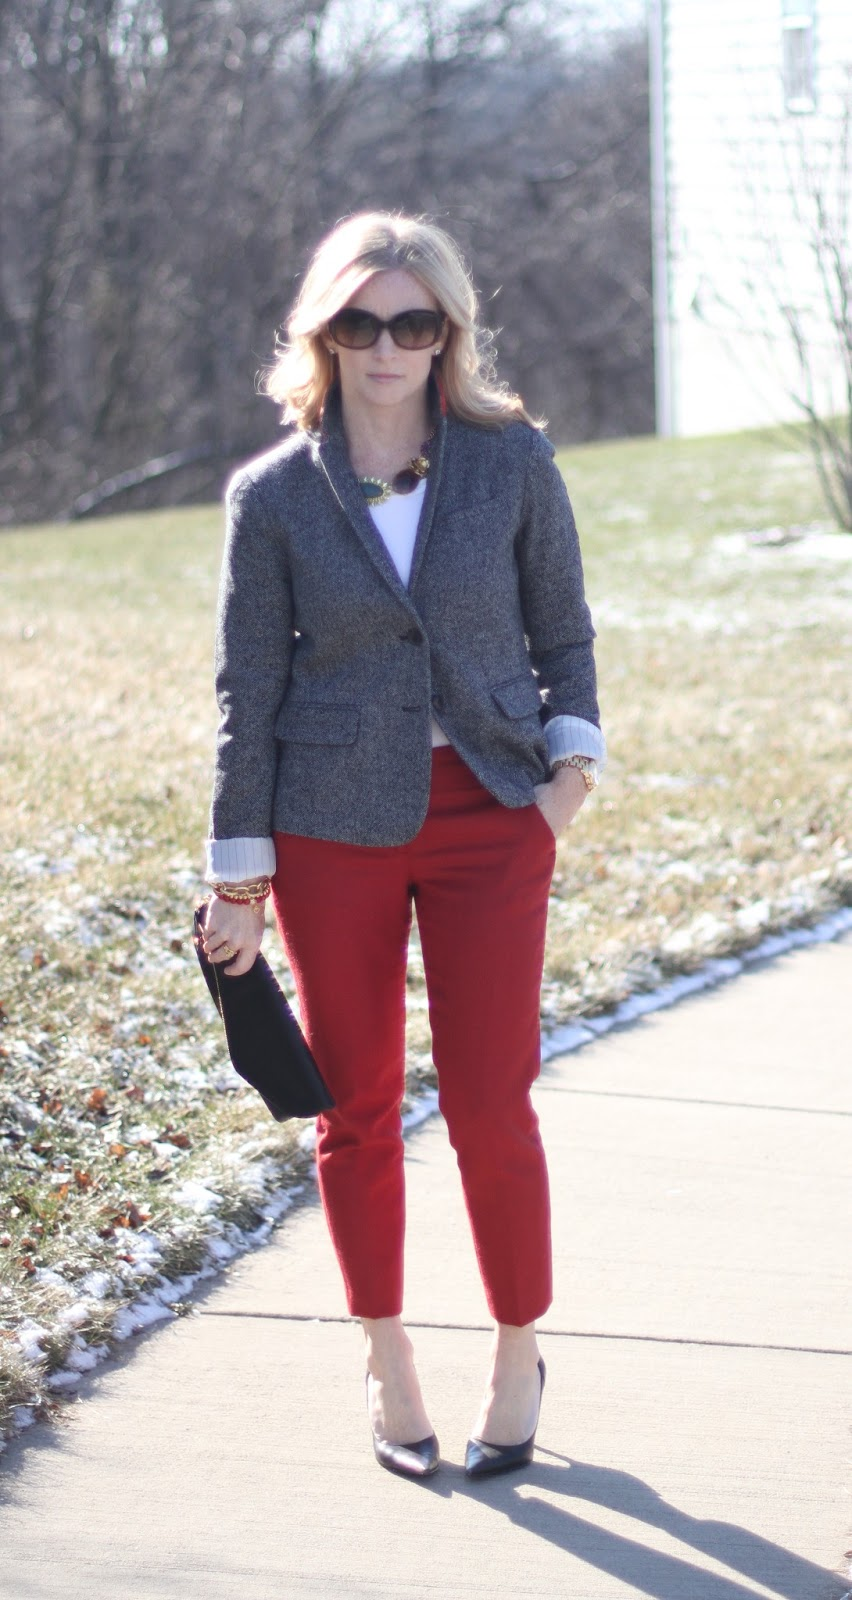 Boden, Gap, Loft, Banana Republic, Nine West, Loren Hope, Simply Lulu Design, Simply Lulu Style, styling red pants, alterations, Michael Kors, Prada, Urban Expressions, chic mom,